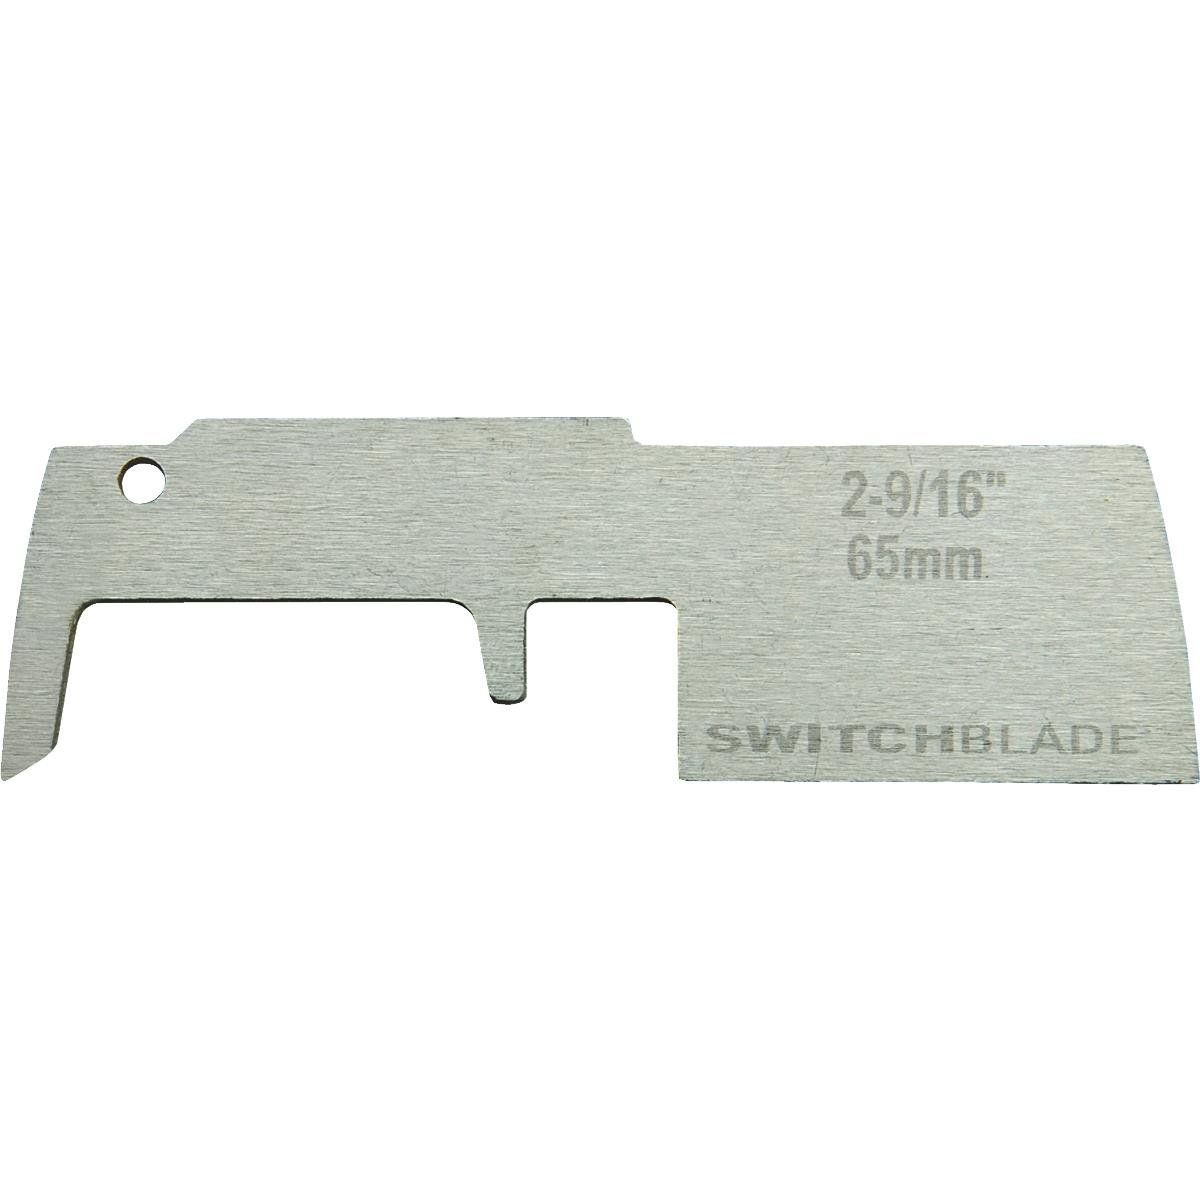 Milwaukee® SwitchBlade™ 48-25-5425 Replacement Blade